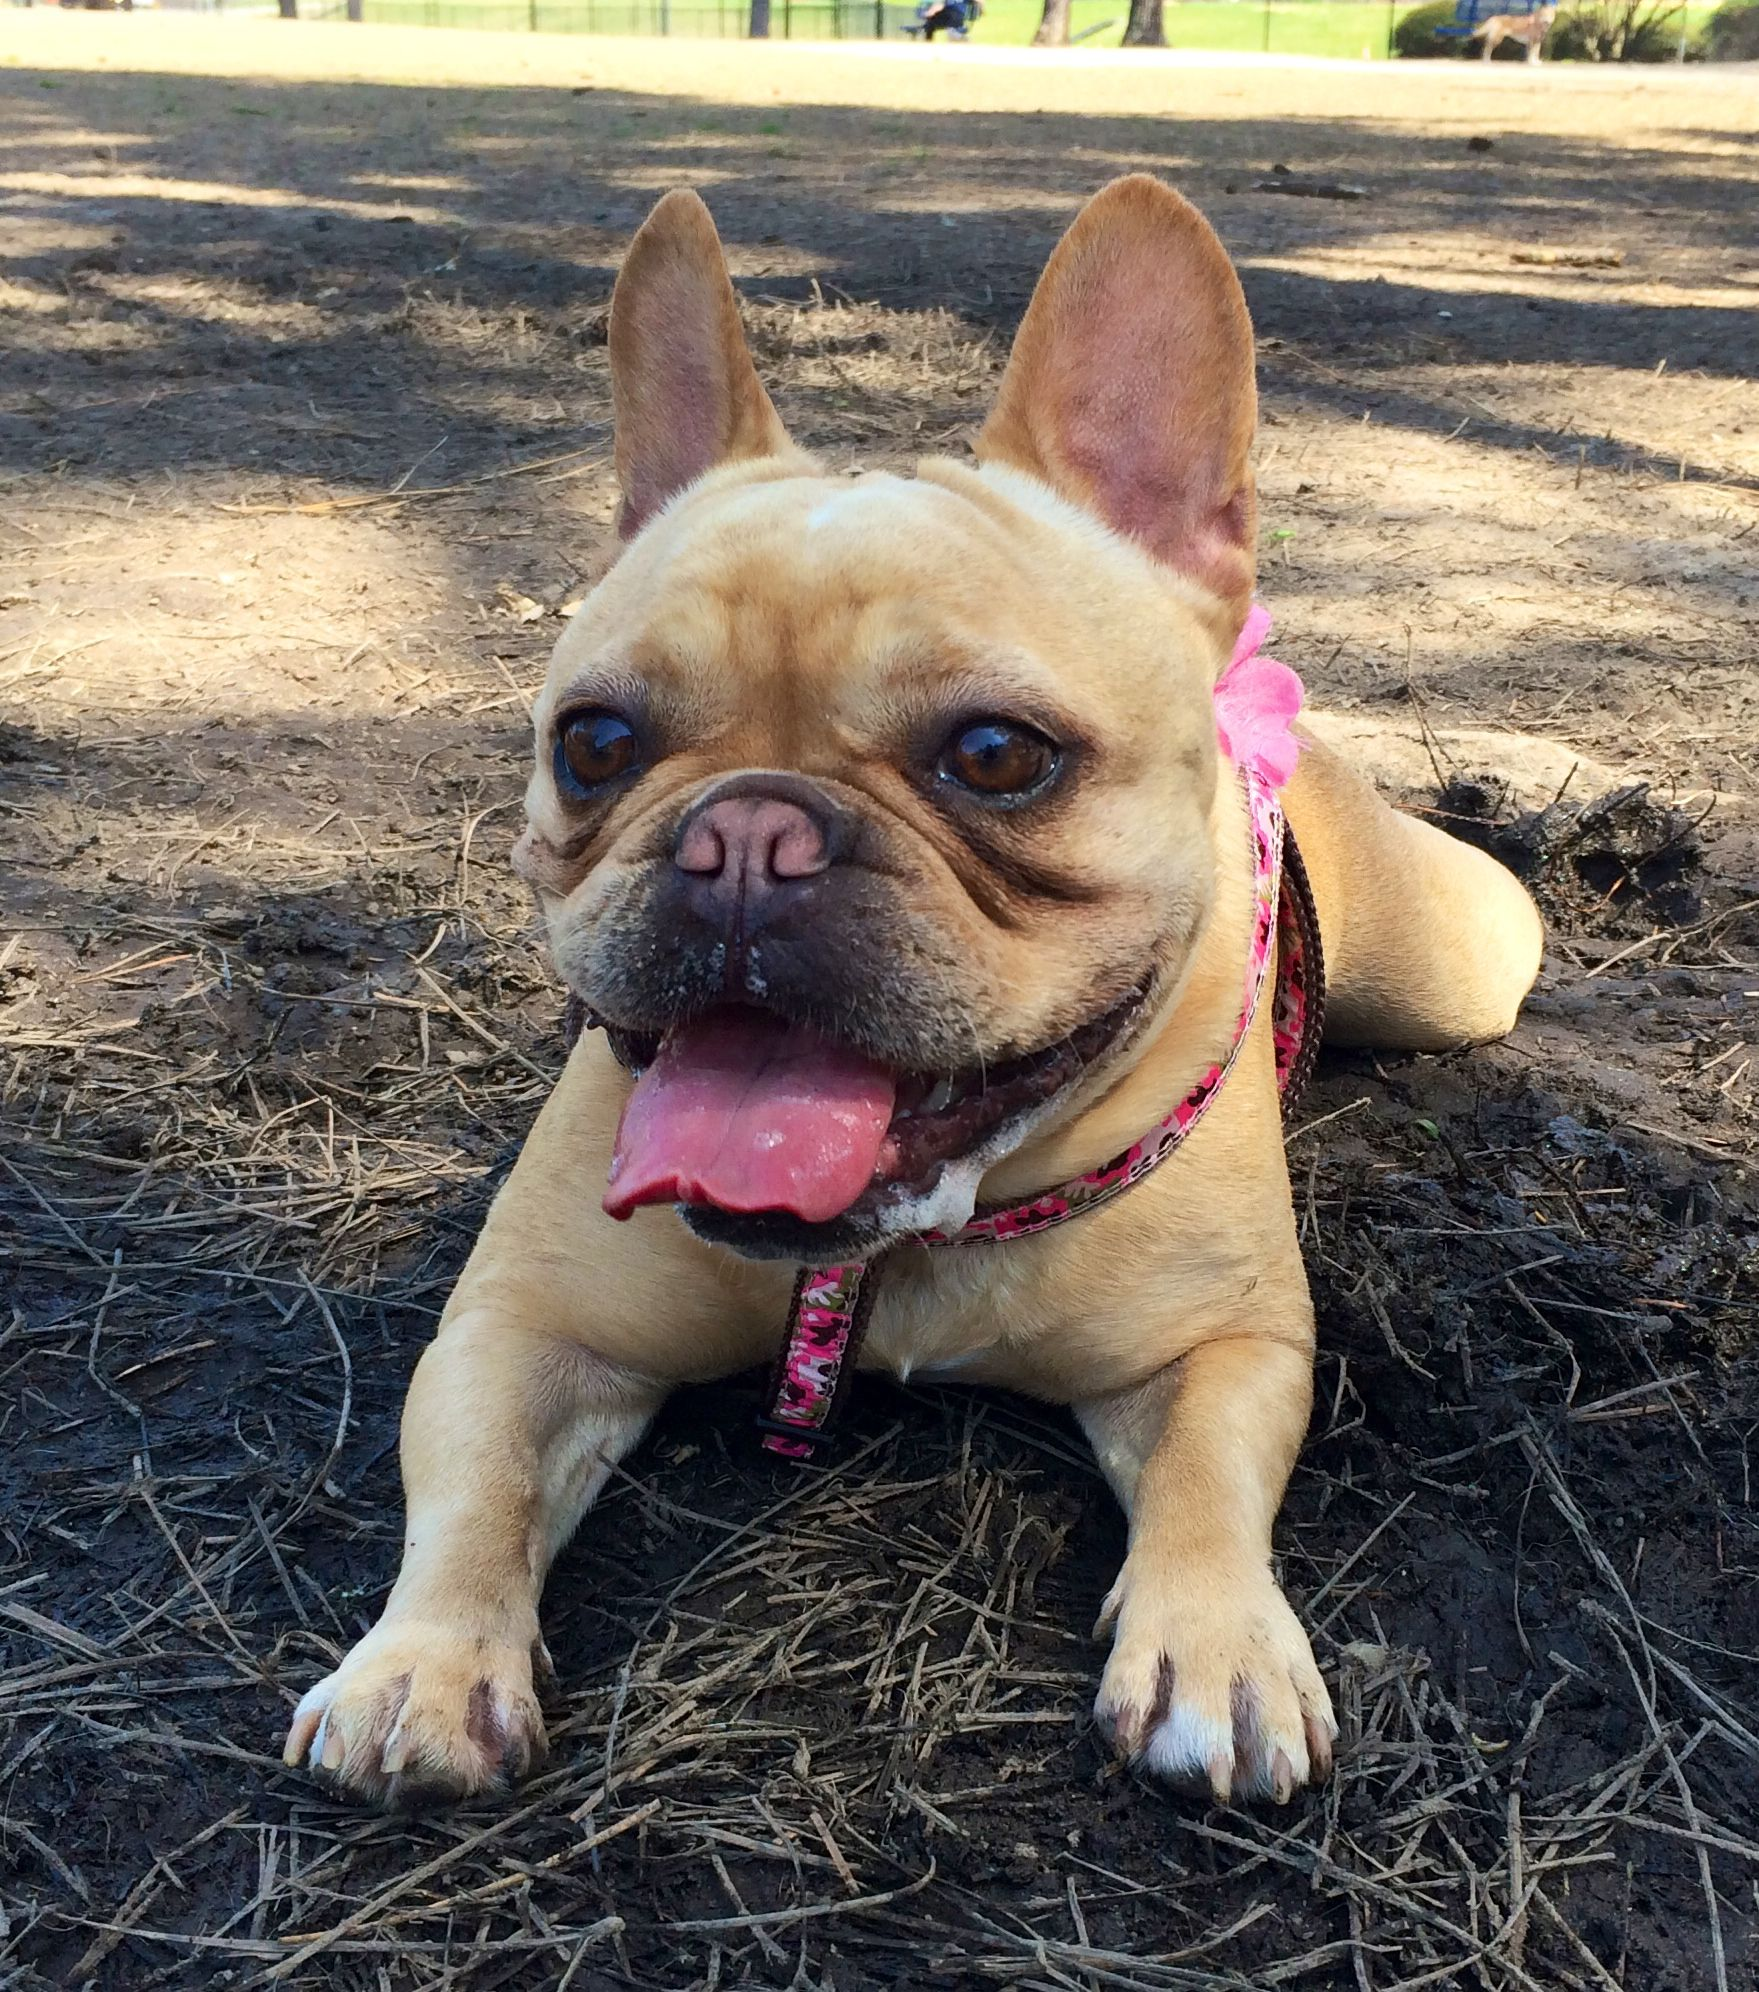 Fancy had a great day at the park! French bulldog, Cute